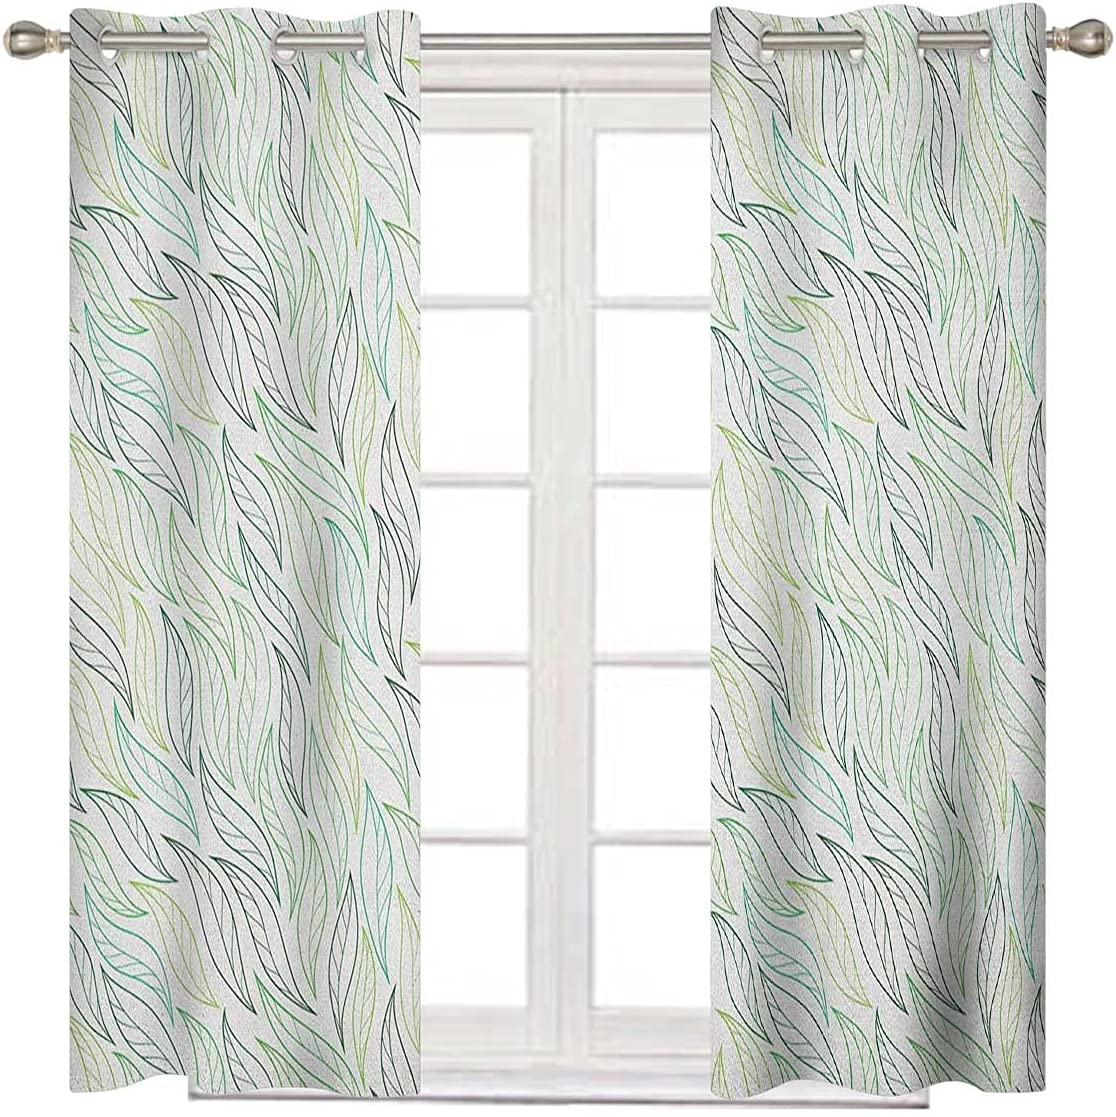 Leaf Outstanding Bedroom Max 44% OFF Blackout Curtains 84 Soft Green Long Inches